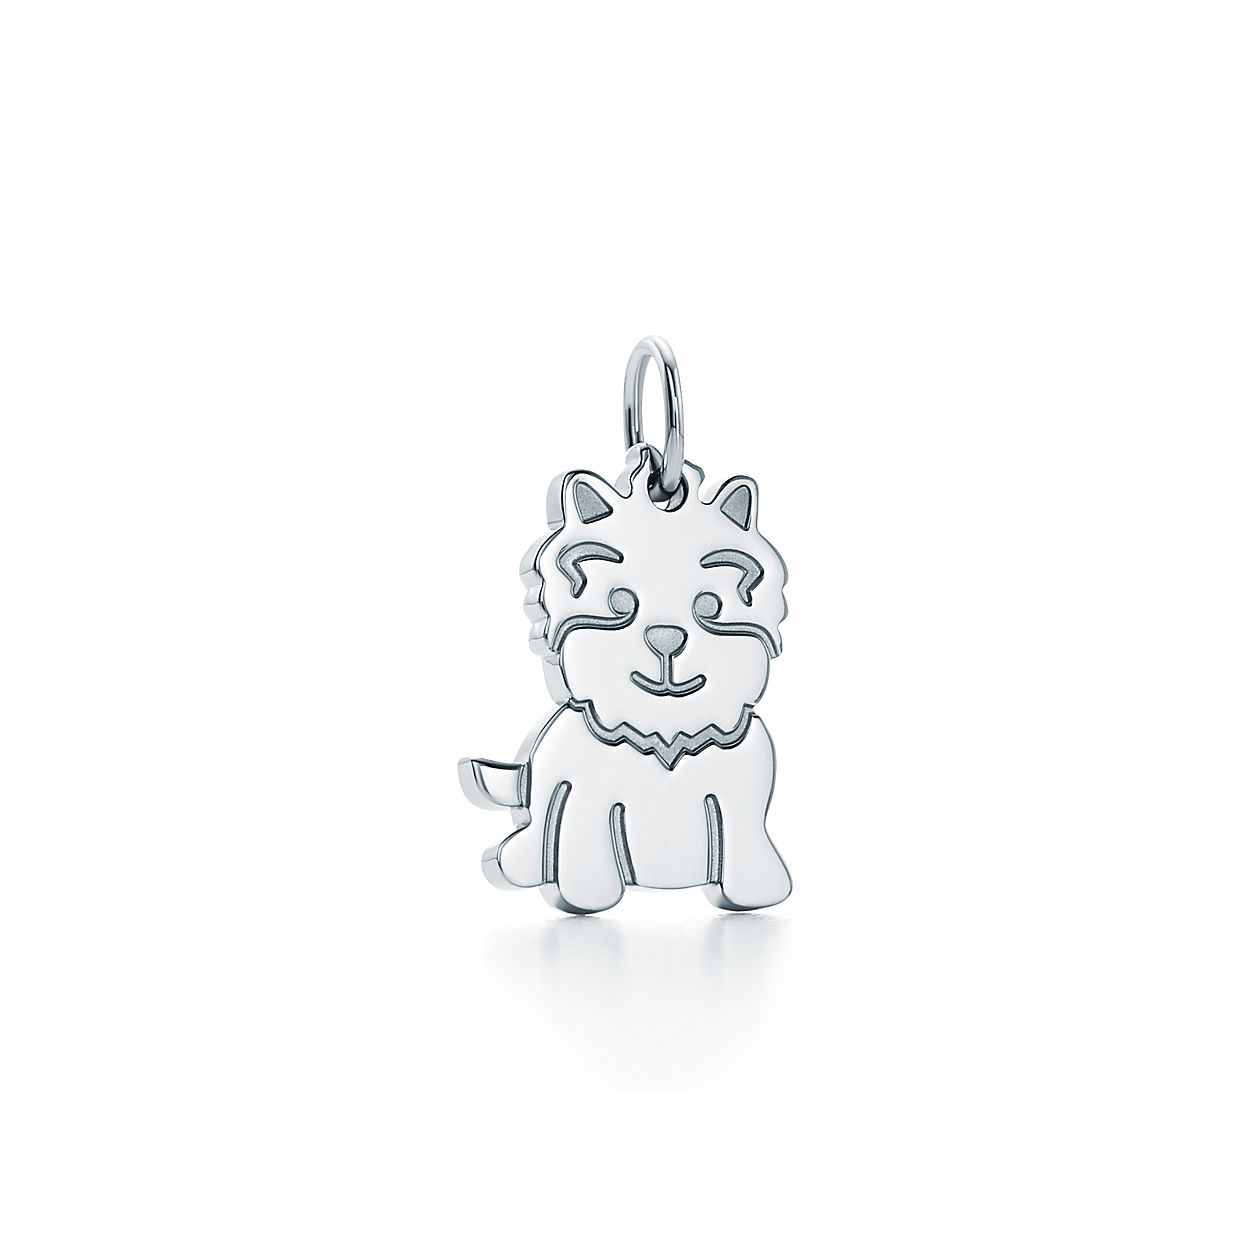 Tiffany charms new yorkie charm in sterling silver tiffany co tiffany charmsnew yorkie charm aloadofball Gallery